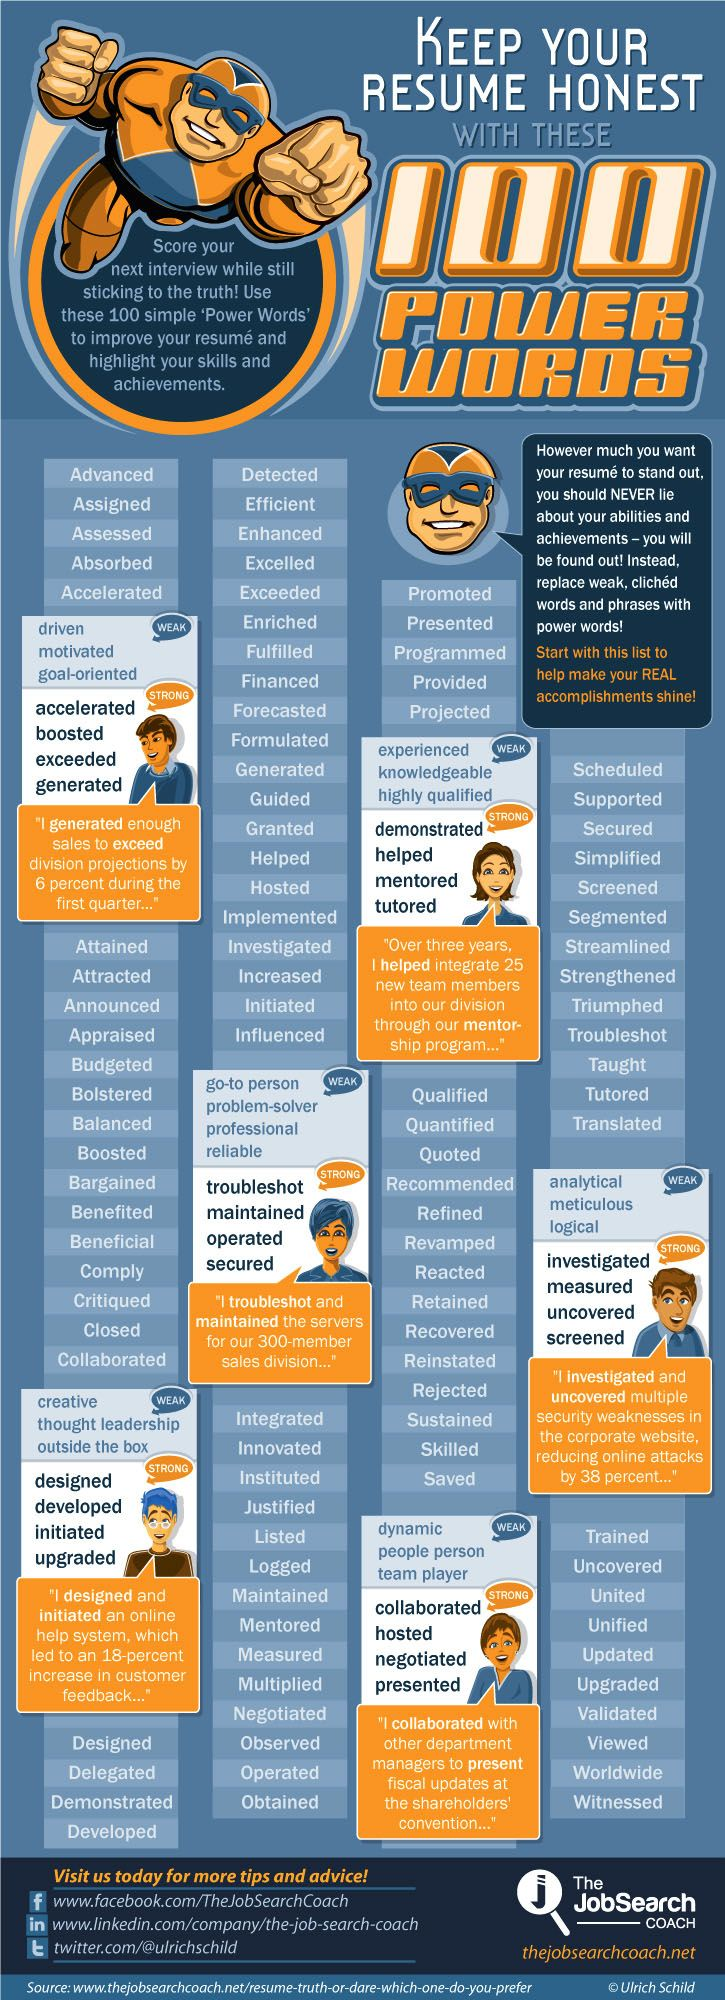 Power Words & Power Words for your Job Search Resume